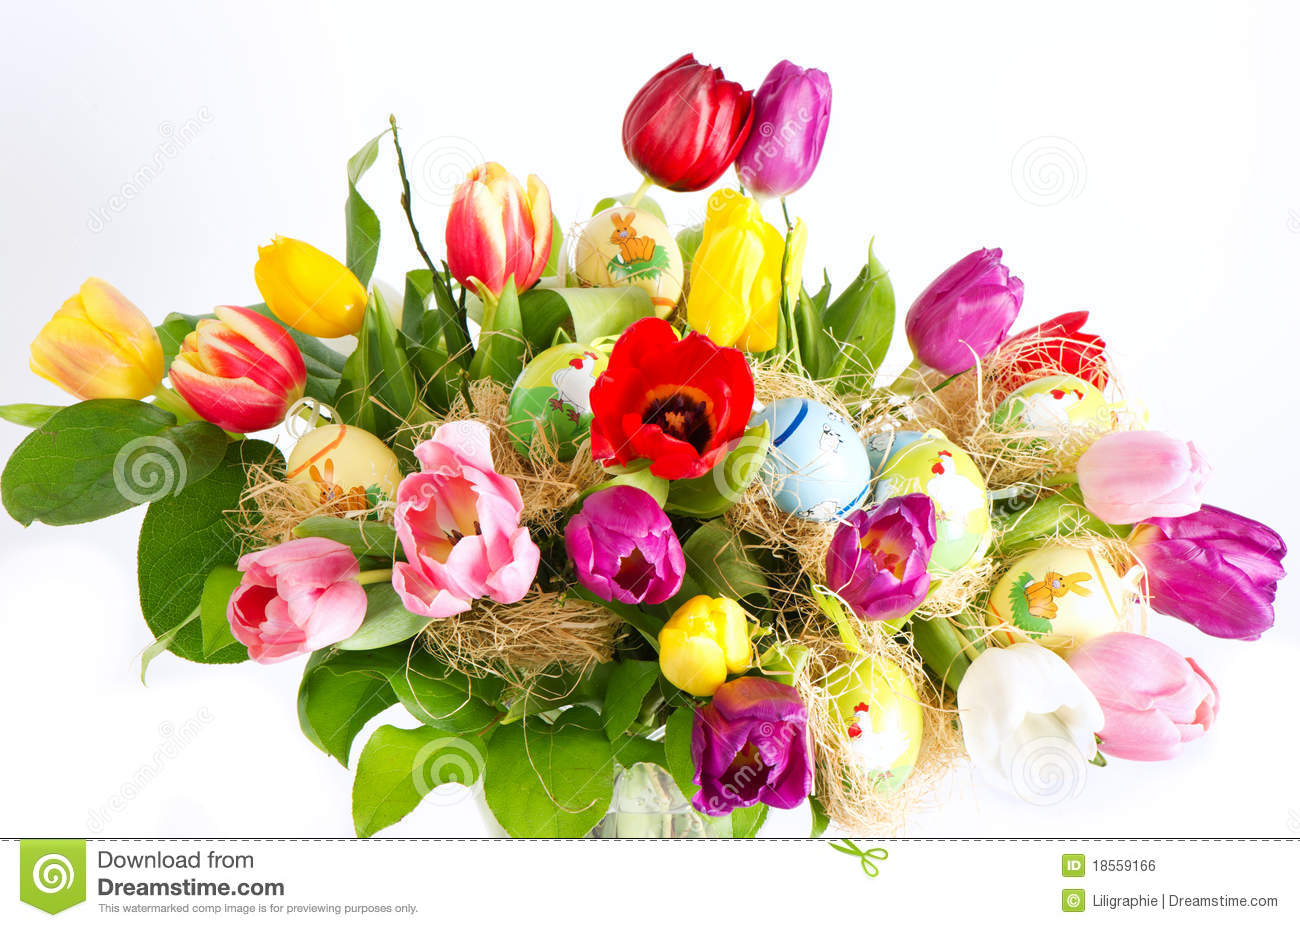 Colorful Easter Tulip Flowers Bouquet Royalty Free Stock Image - Image ...